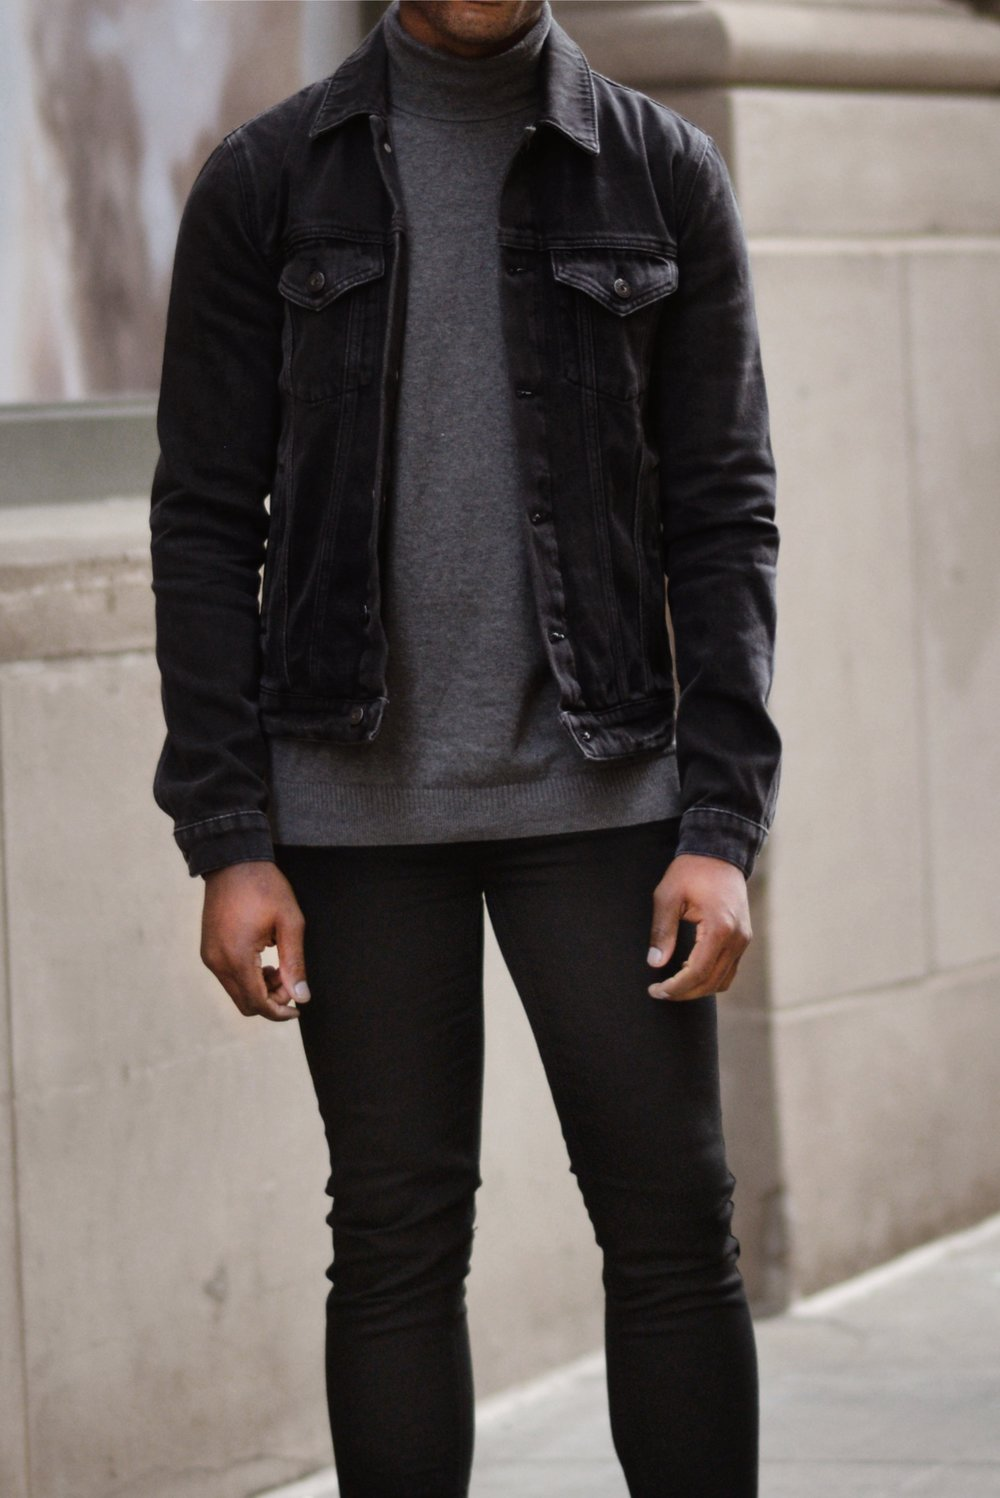 The-Look-Principle-Topman-Denim-A Celebration-Of-The-Fabric-We Live-In-2.jpg